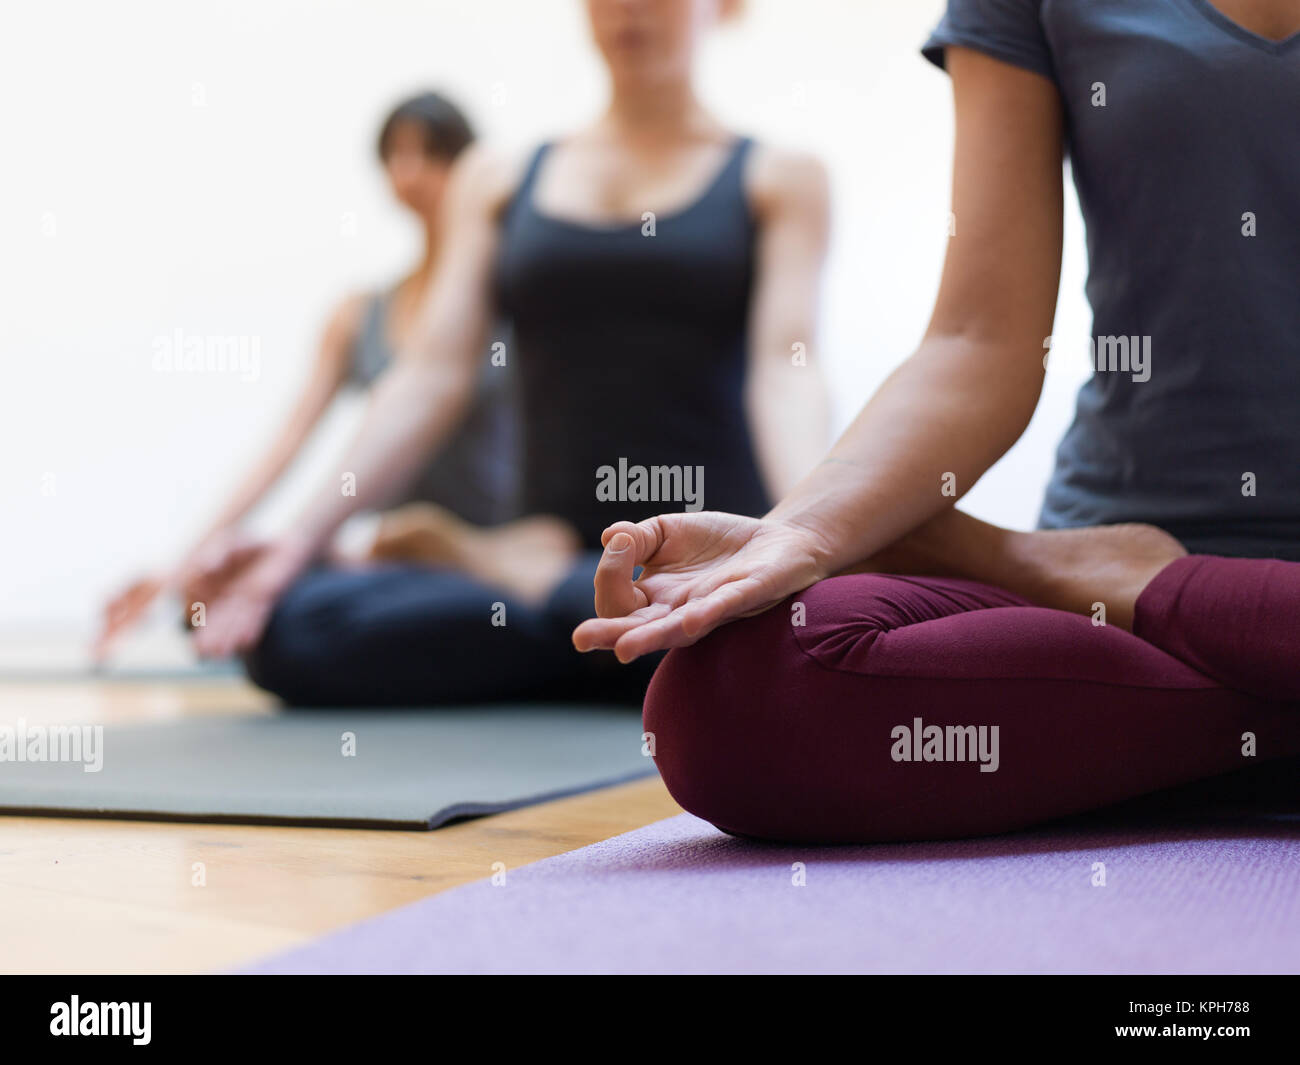 Women practicing yoga together and sitting in the lotus pose: mindfulness meditation, spirituality and healthy lifestyle - Stock Image